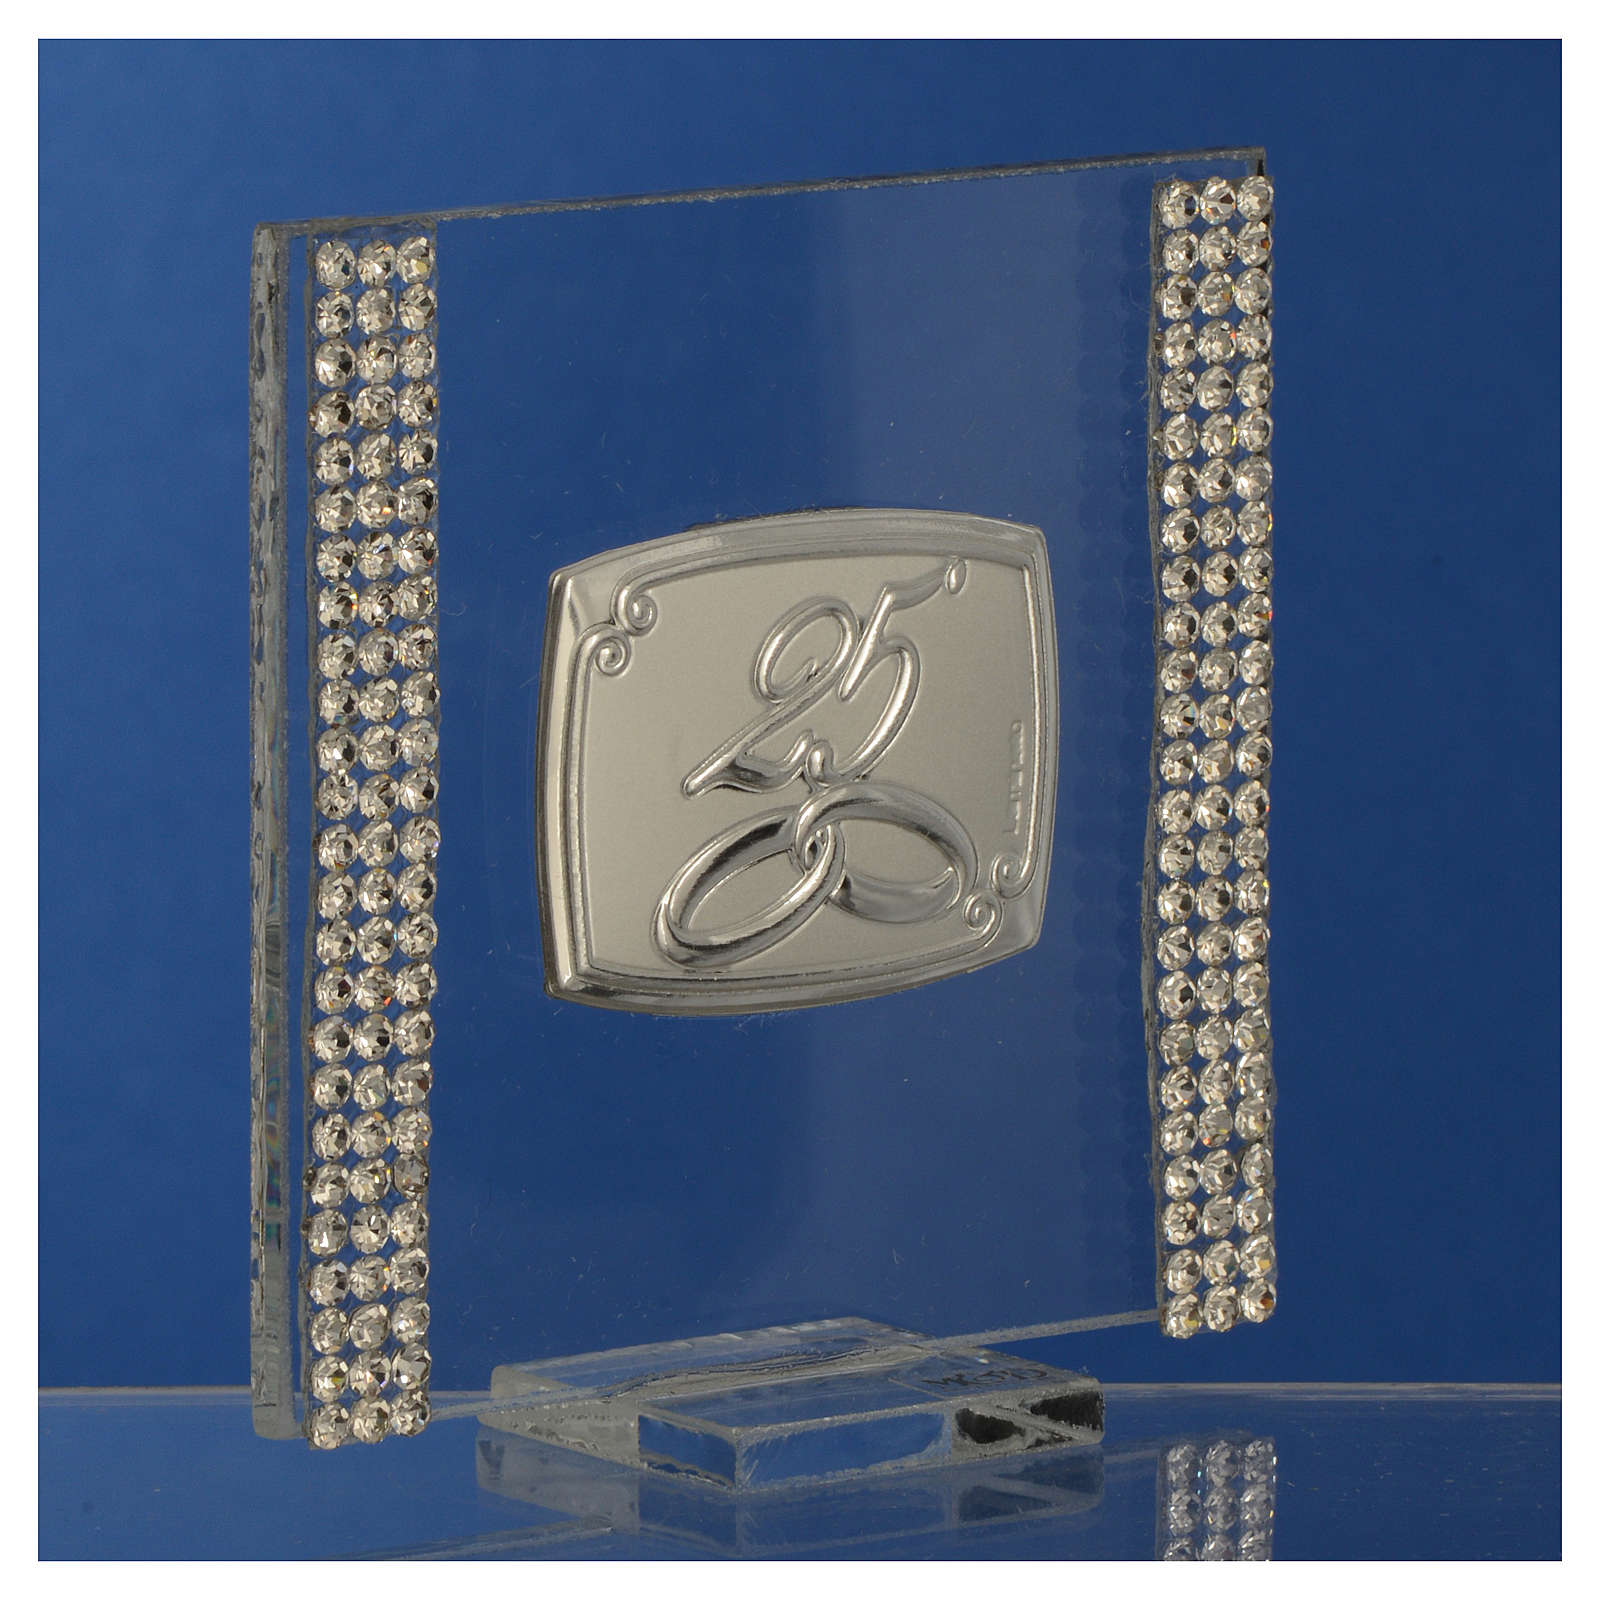 25 year anniversary favour silver and rhinestones 7x7cm 3